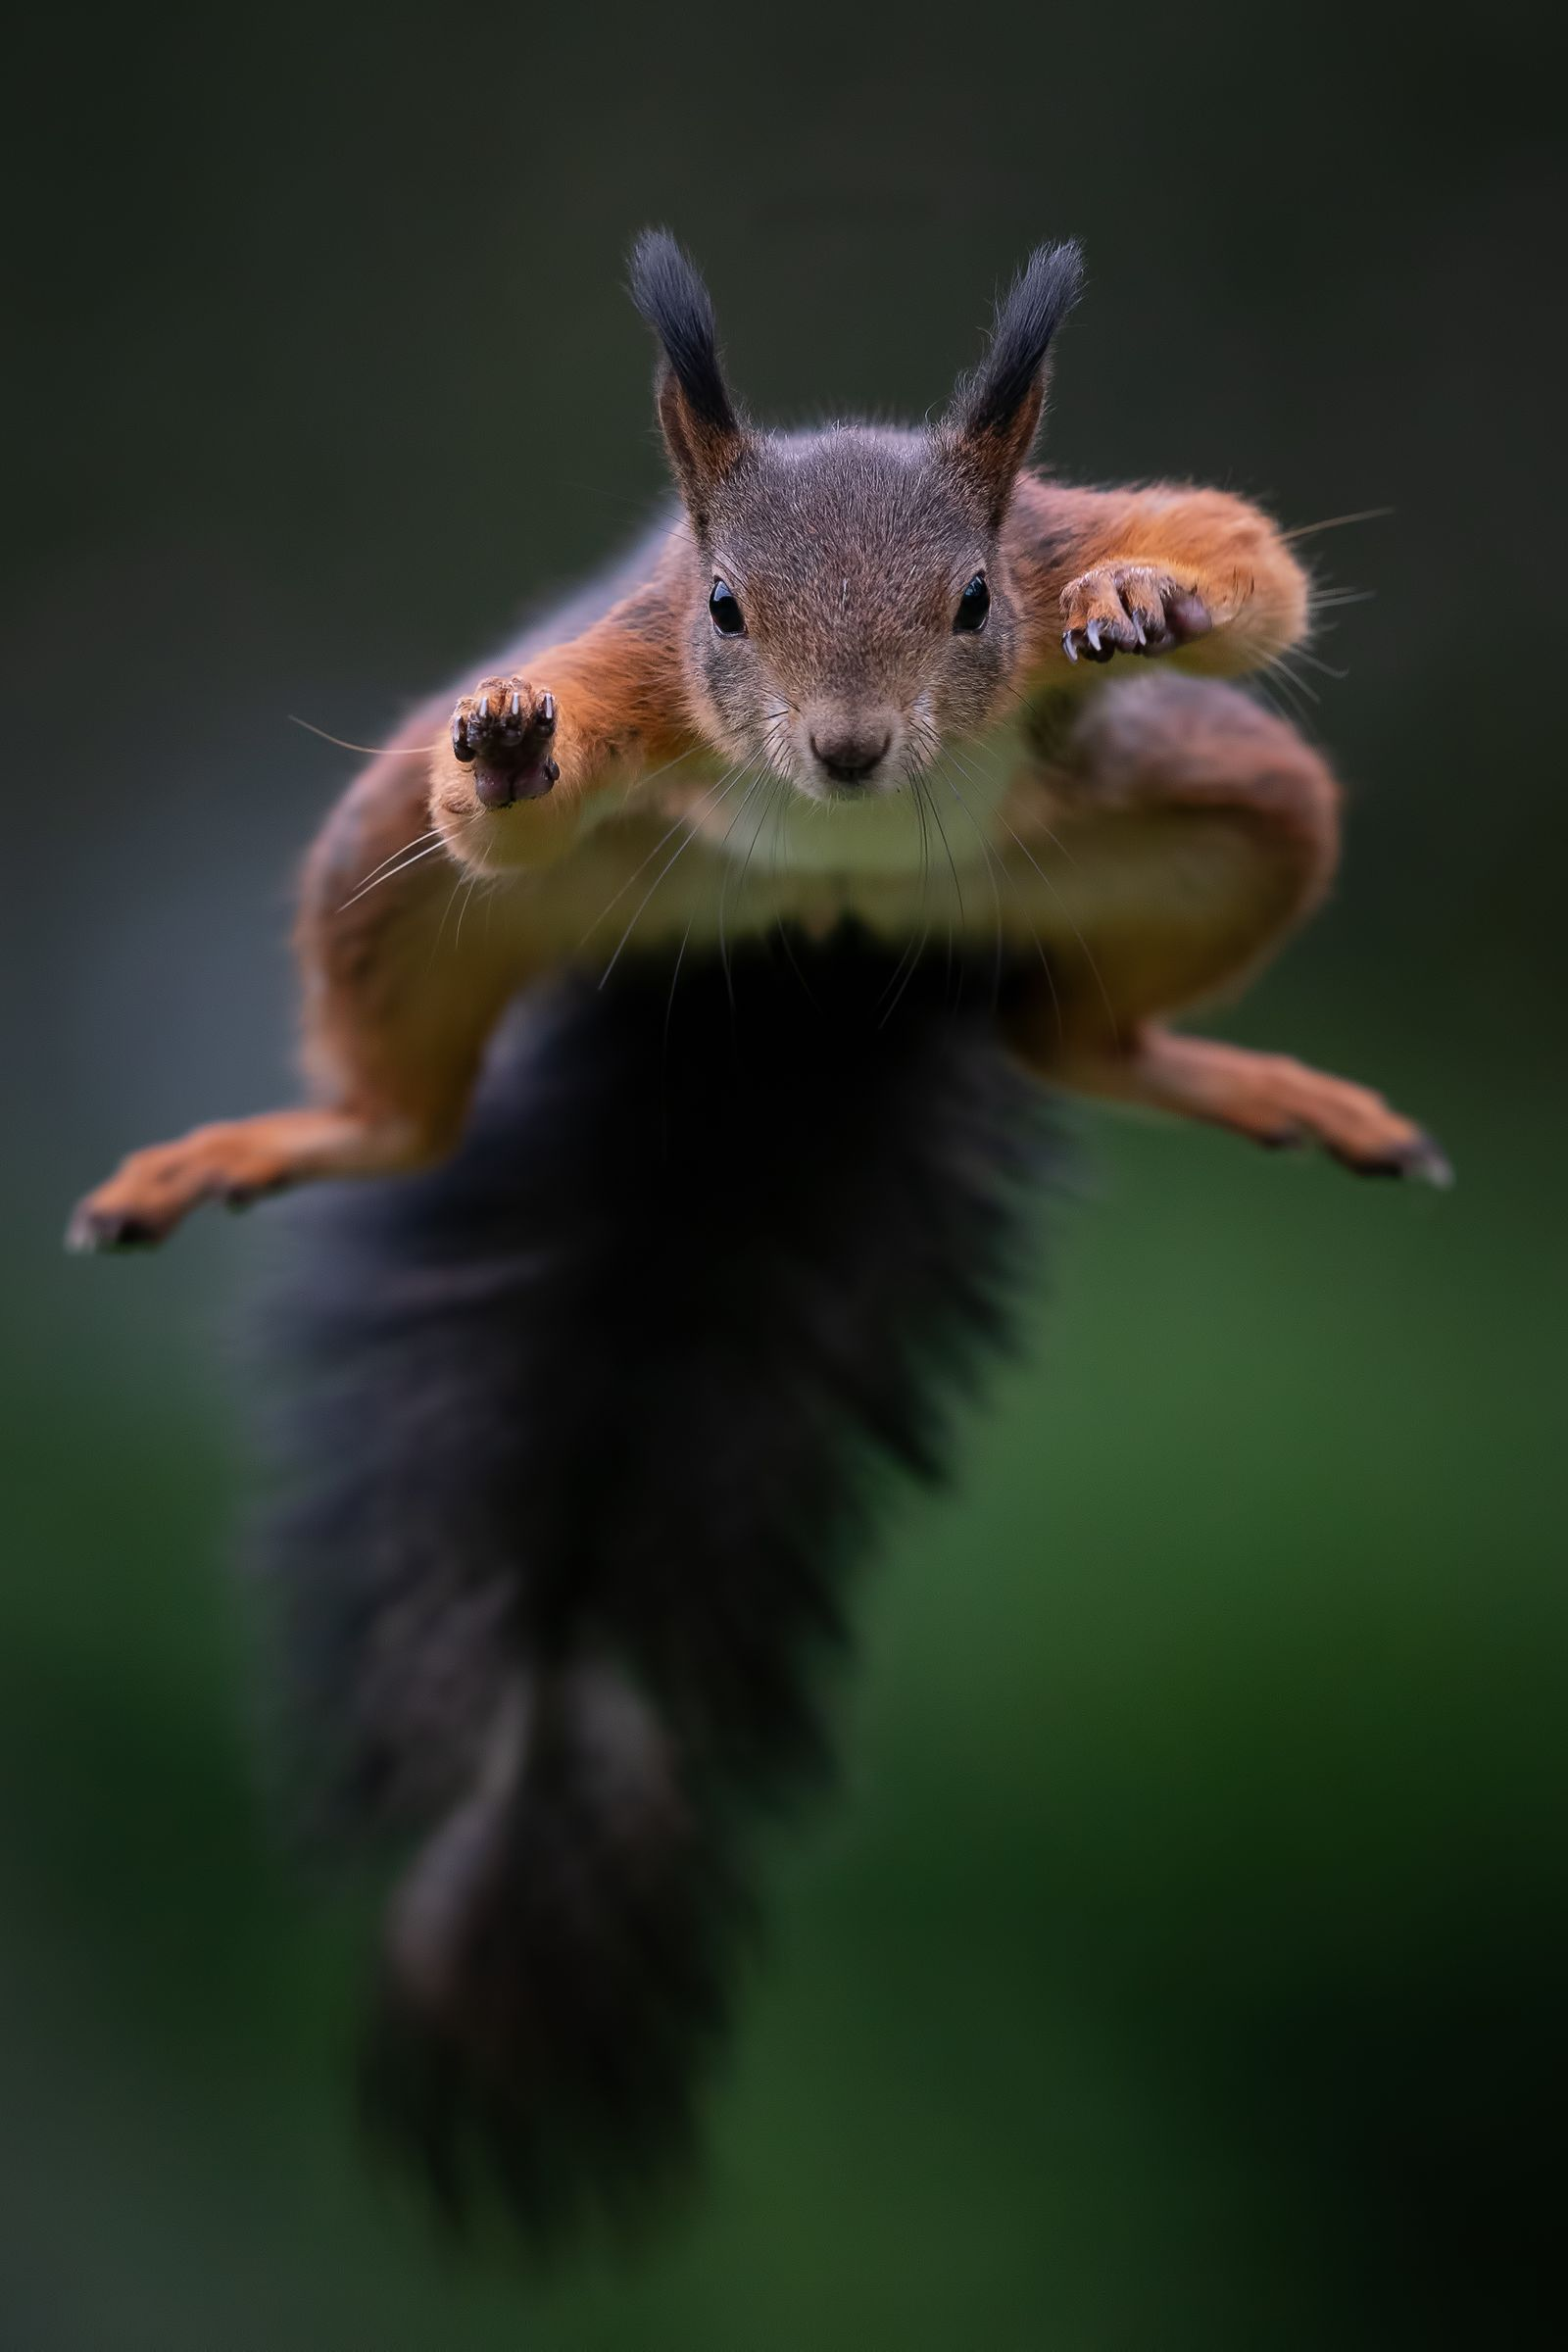 Bobby the jumping squirrel